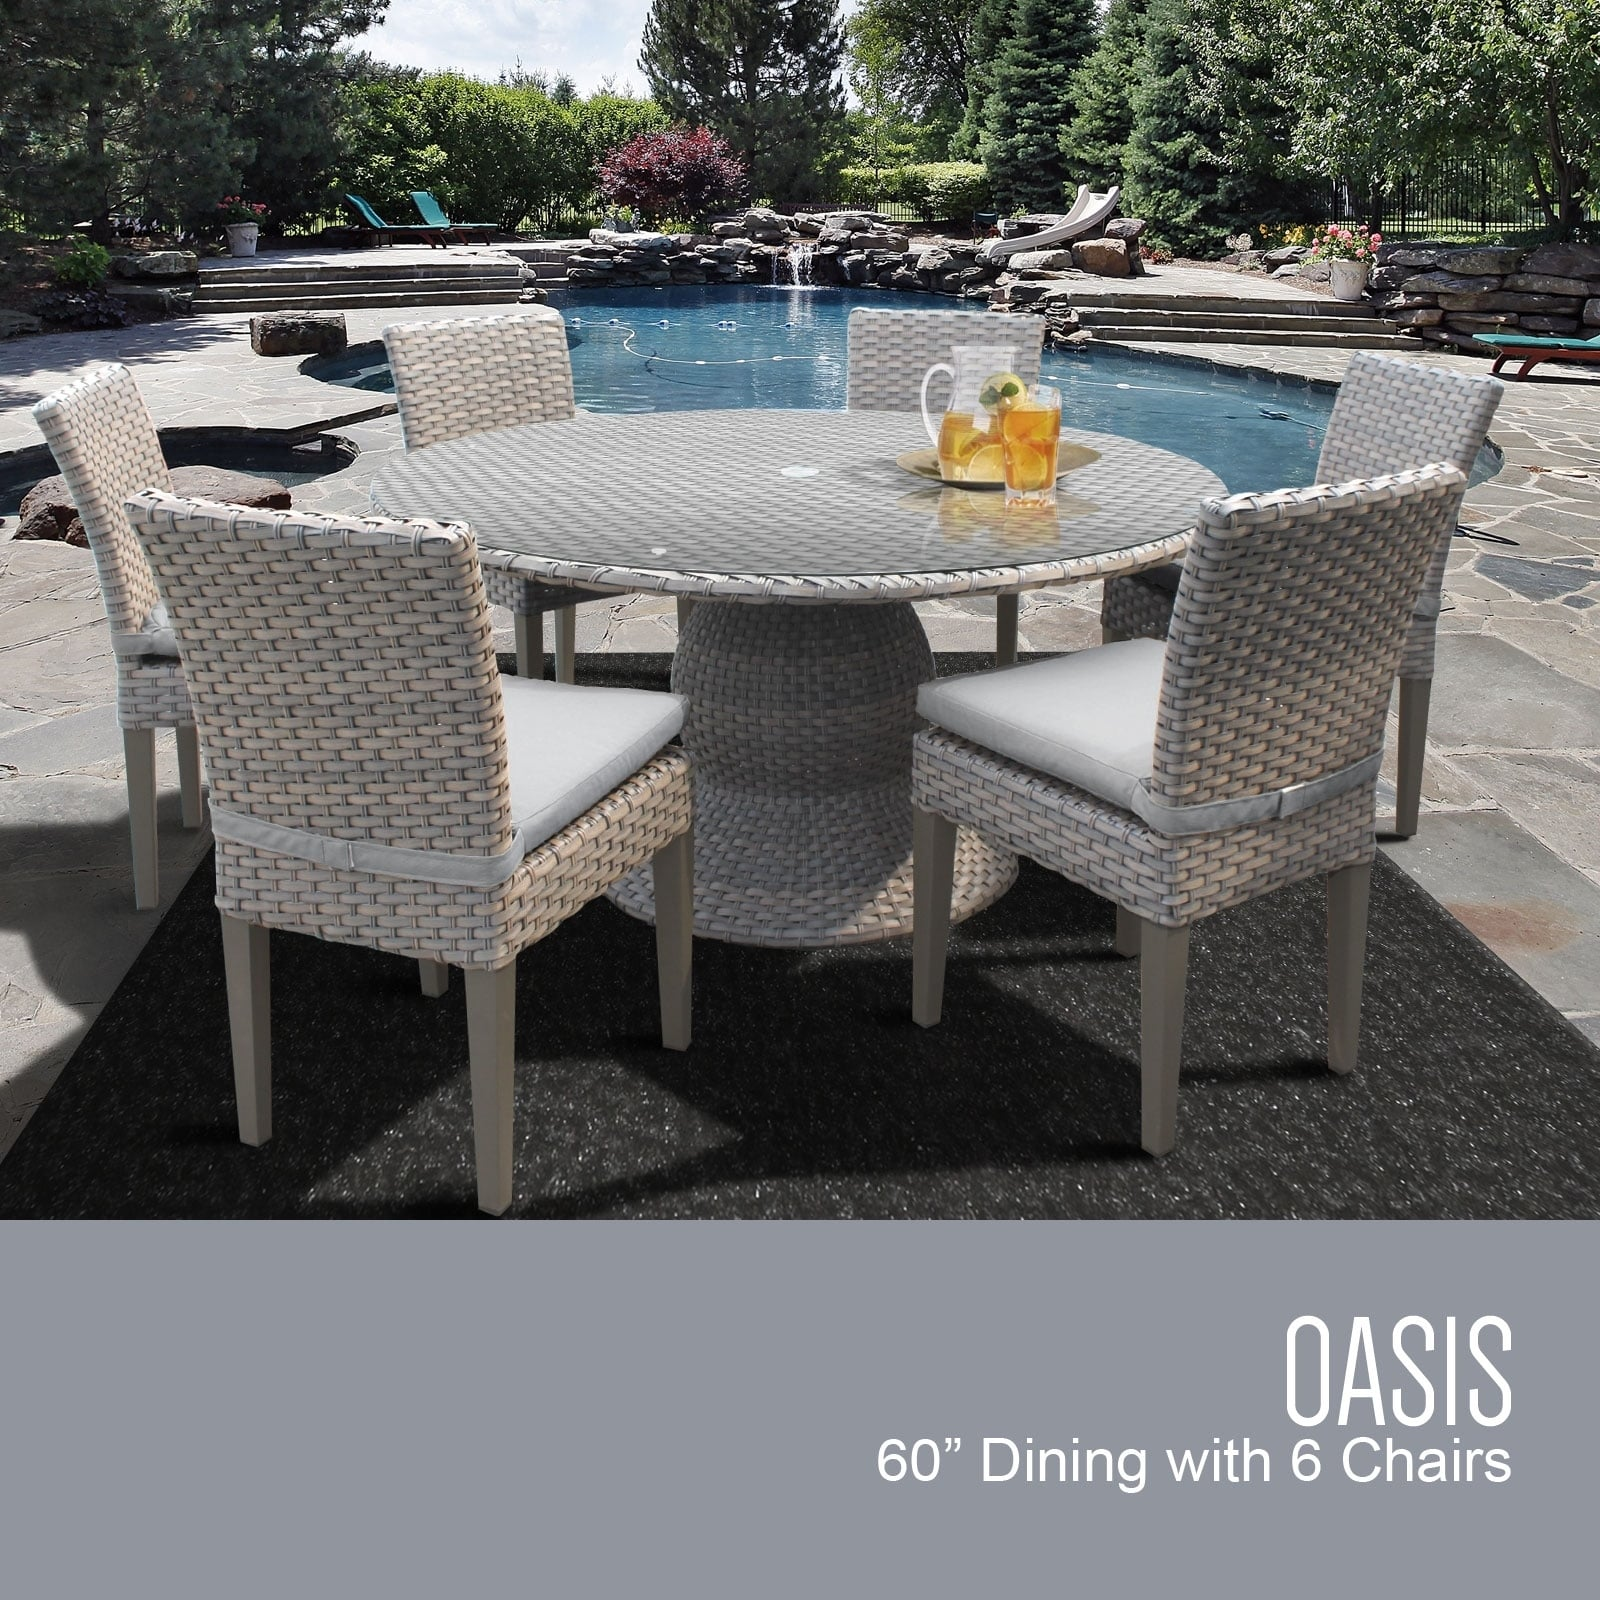 oasis 60 round glass top patio dining table with 6 chairs in wheat